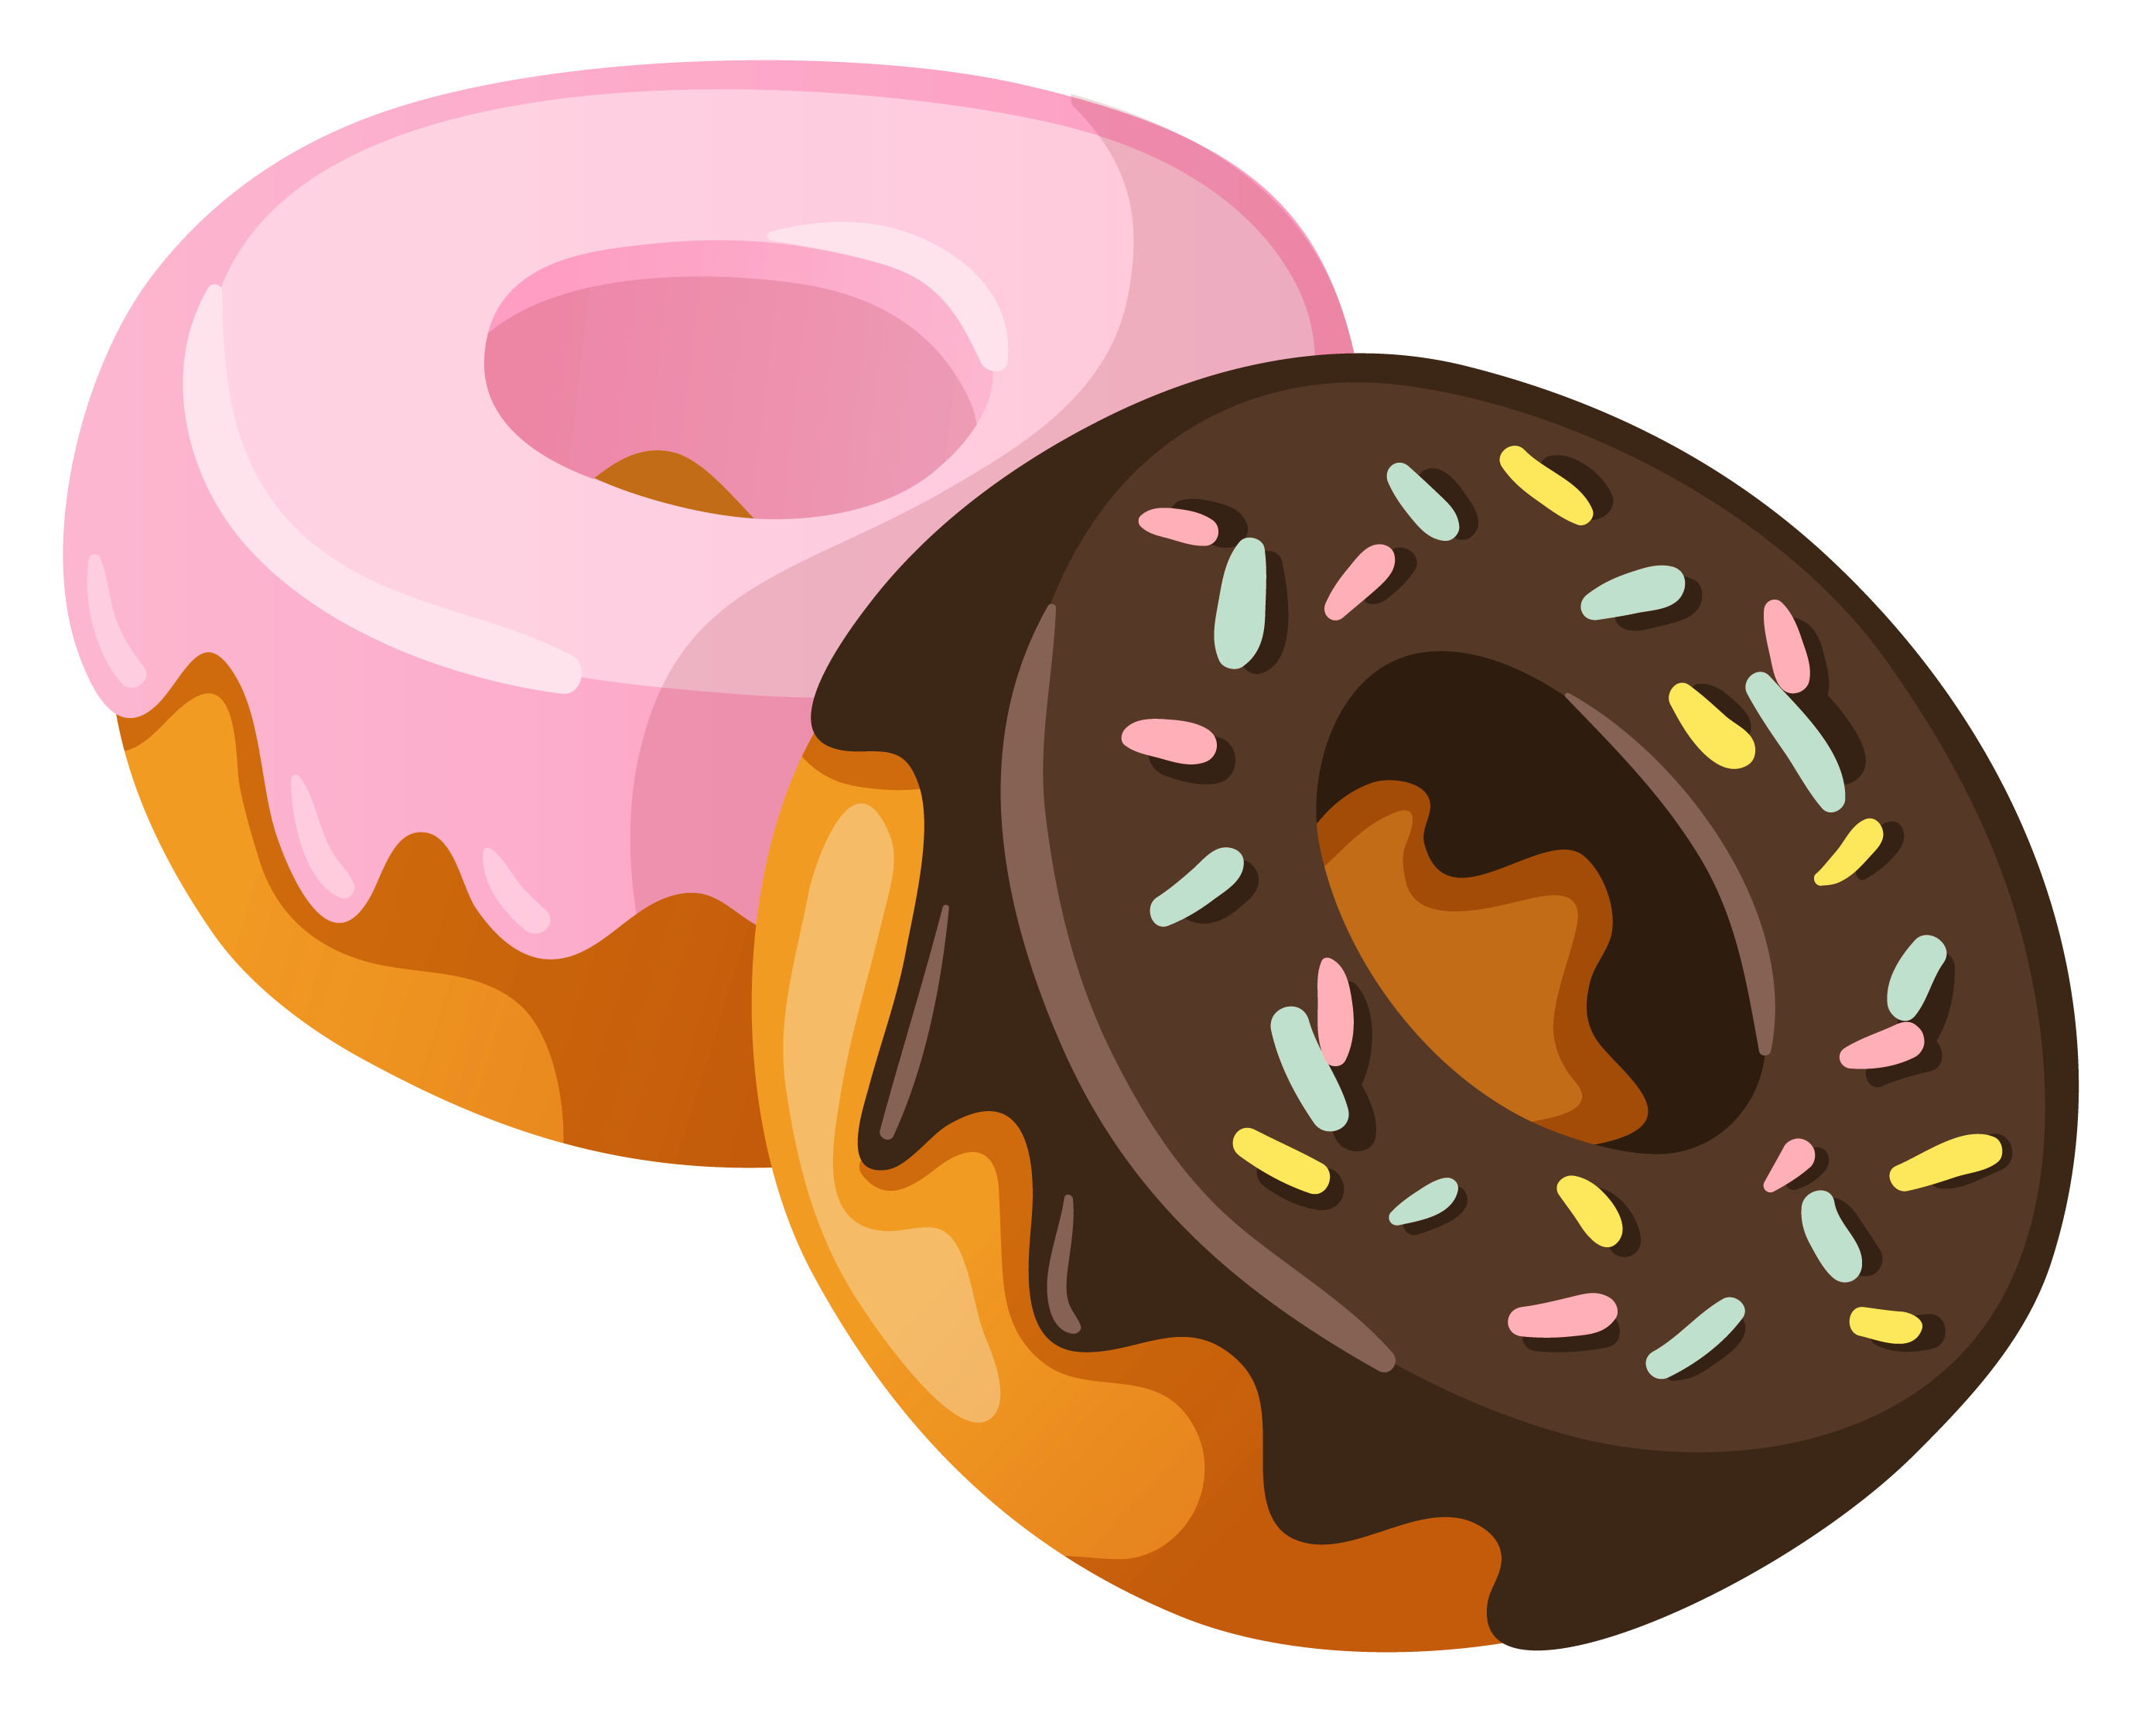 Donuts png picture gallery. Desserts clipart candy